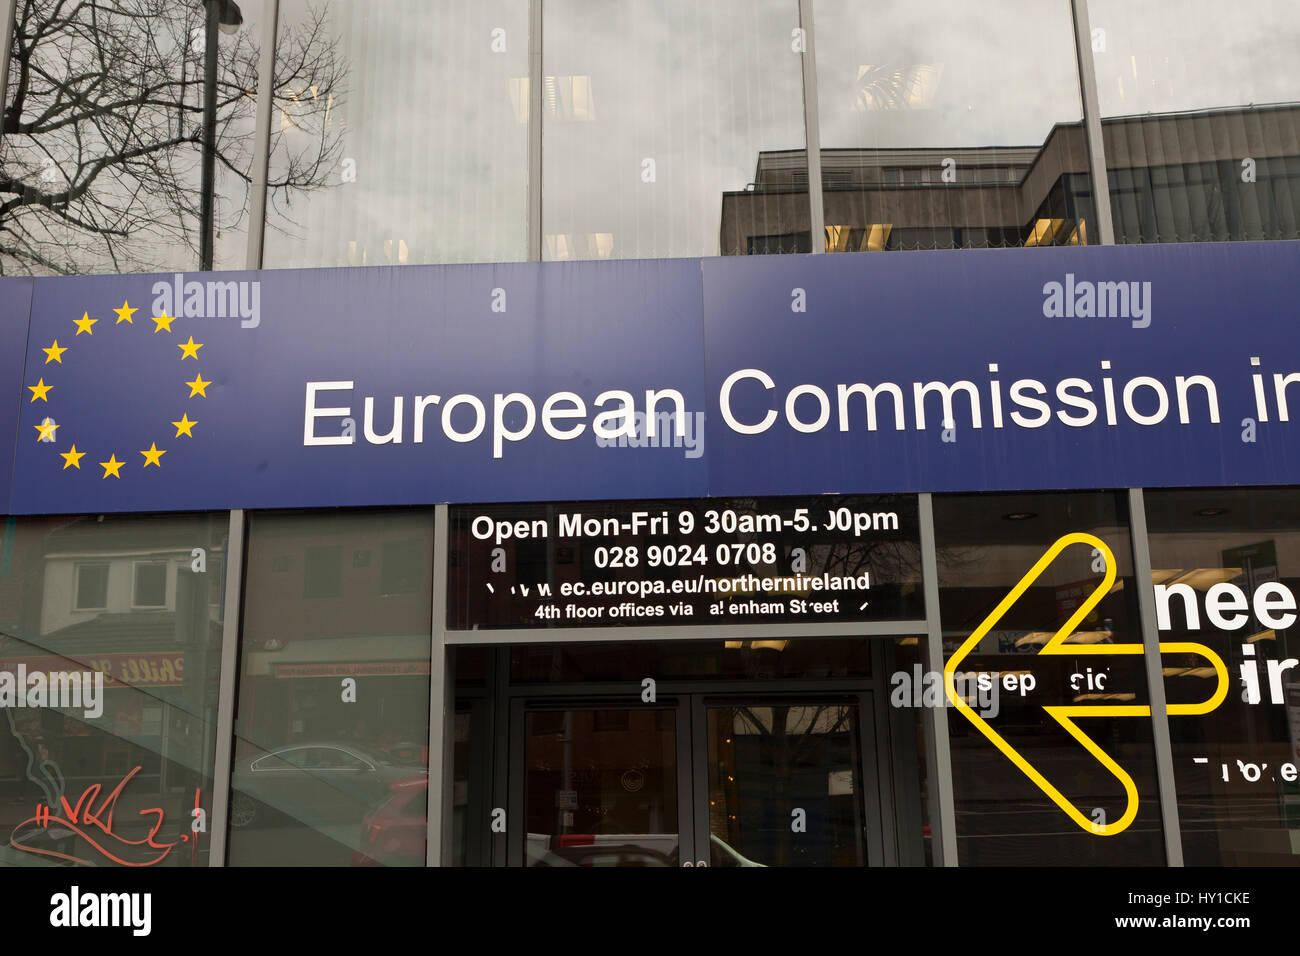 Dublin Road,Belfast 30th March 2017.  European Commision for Northern Ireland Building in Belfast Stock Photo